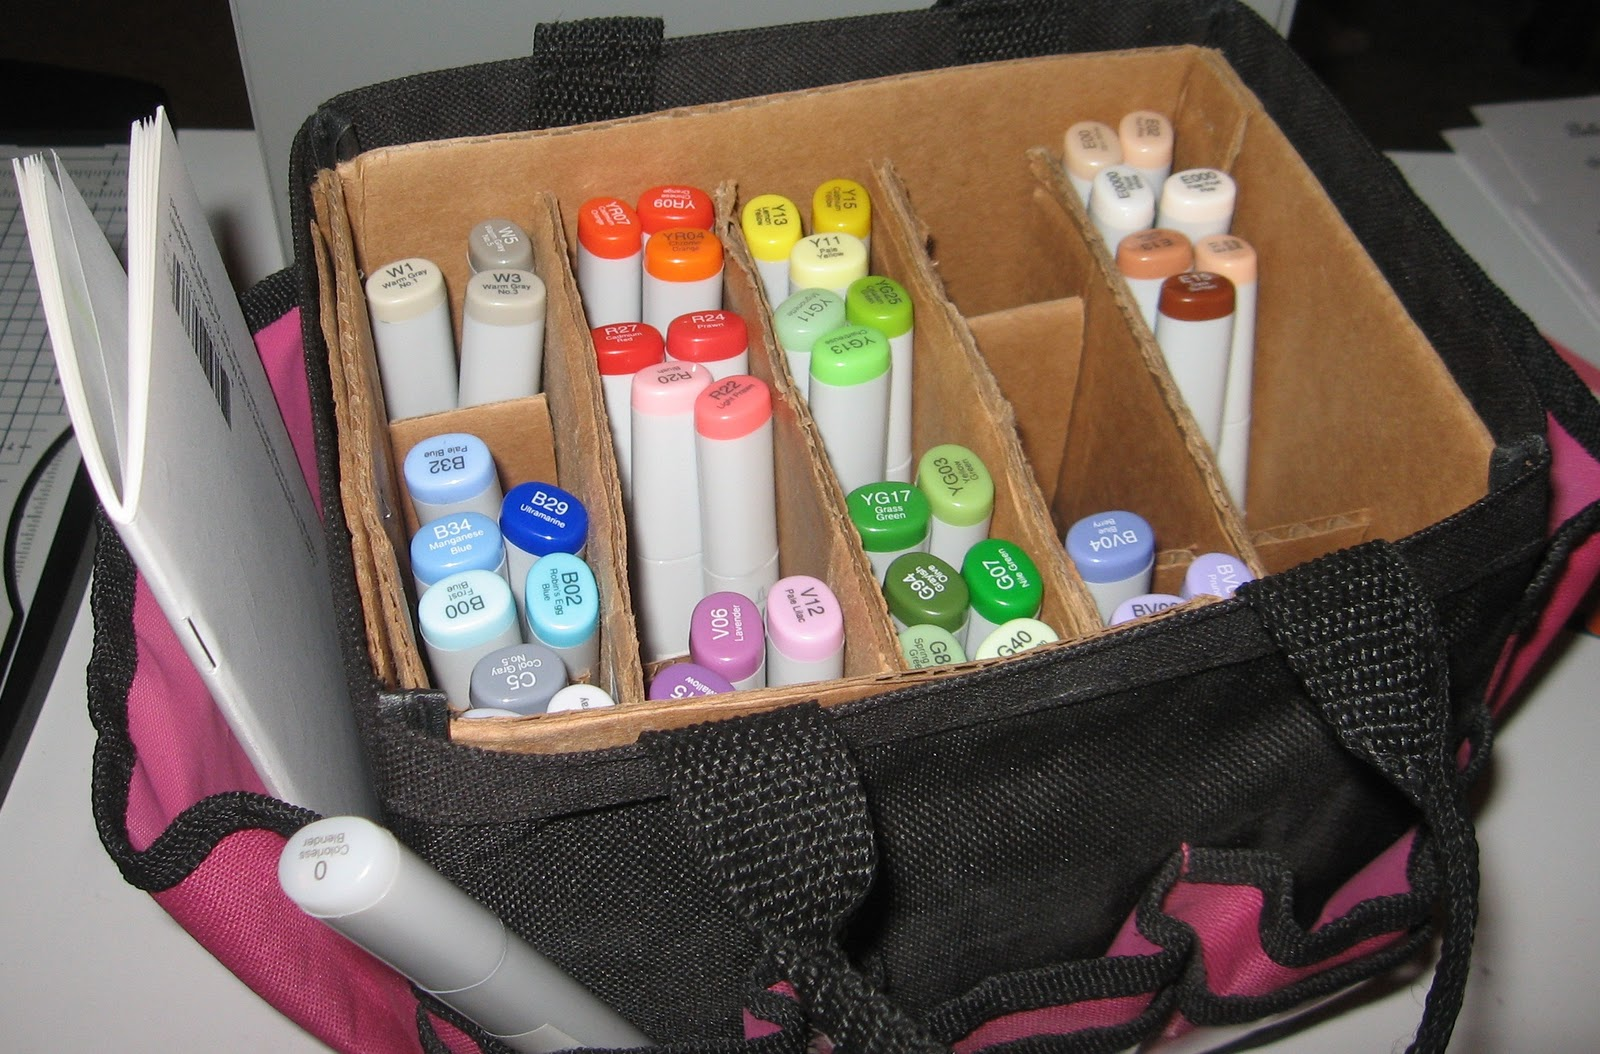 Mousekemom39s Mouseworks Copic Storage Idea